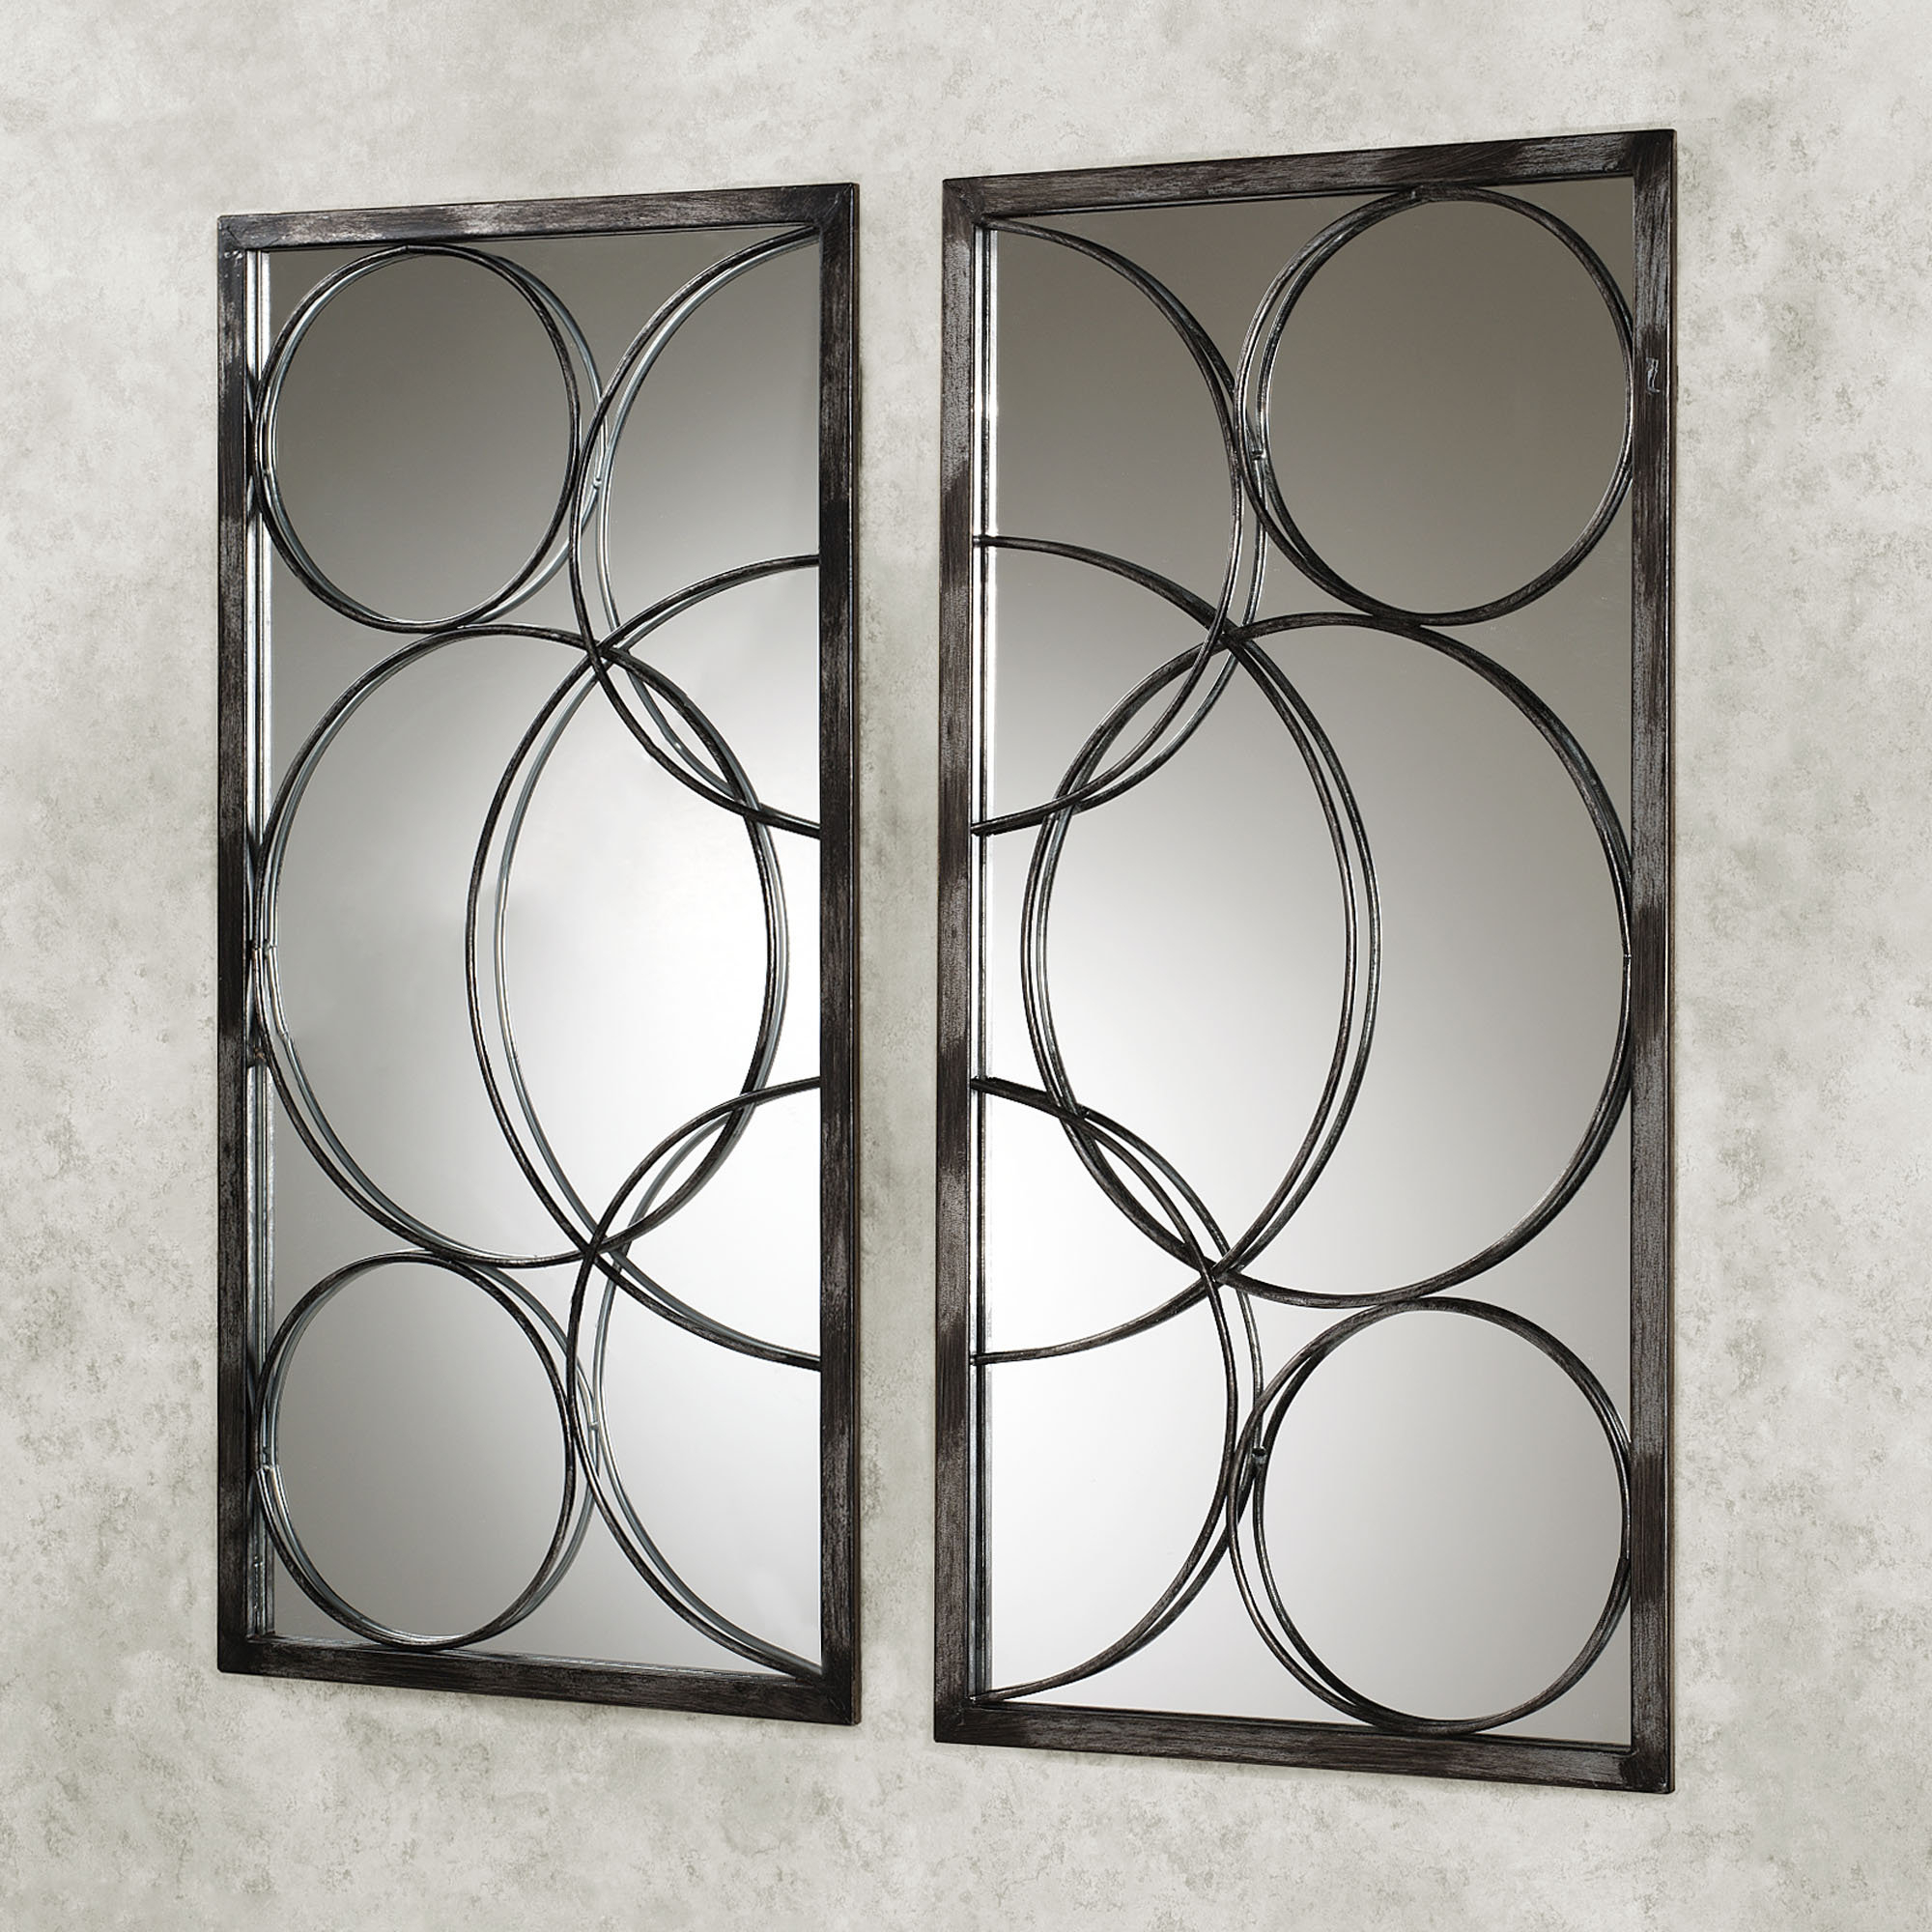 Decoration For Home In Fashionable Decorative Black Wall Mirrors (View 12 of 20)